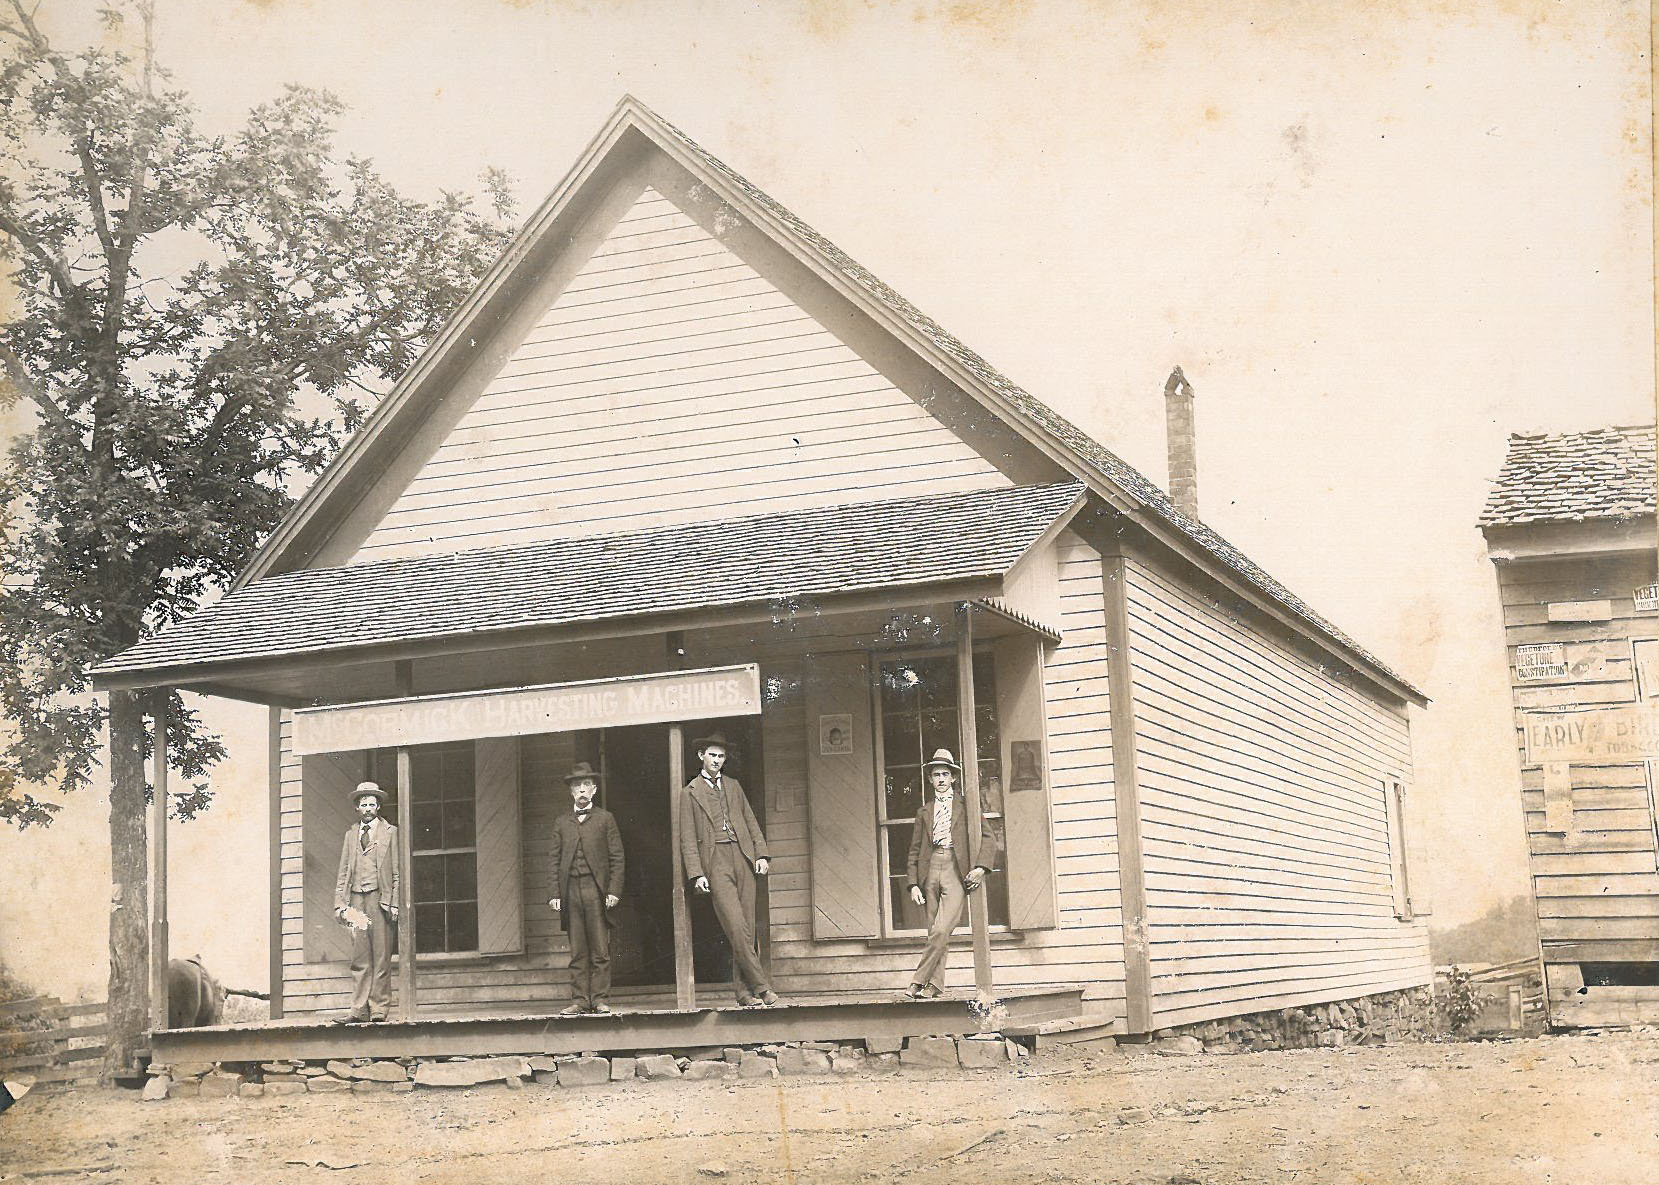 Covered Bridge Store, circa 1900